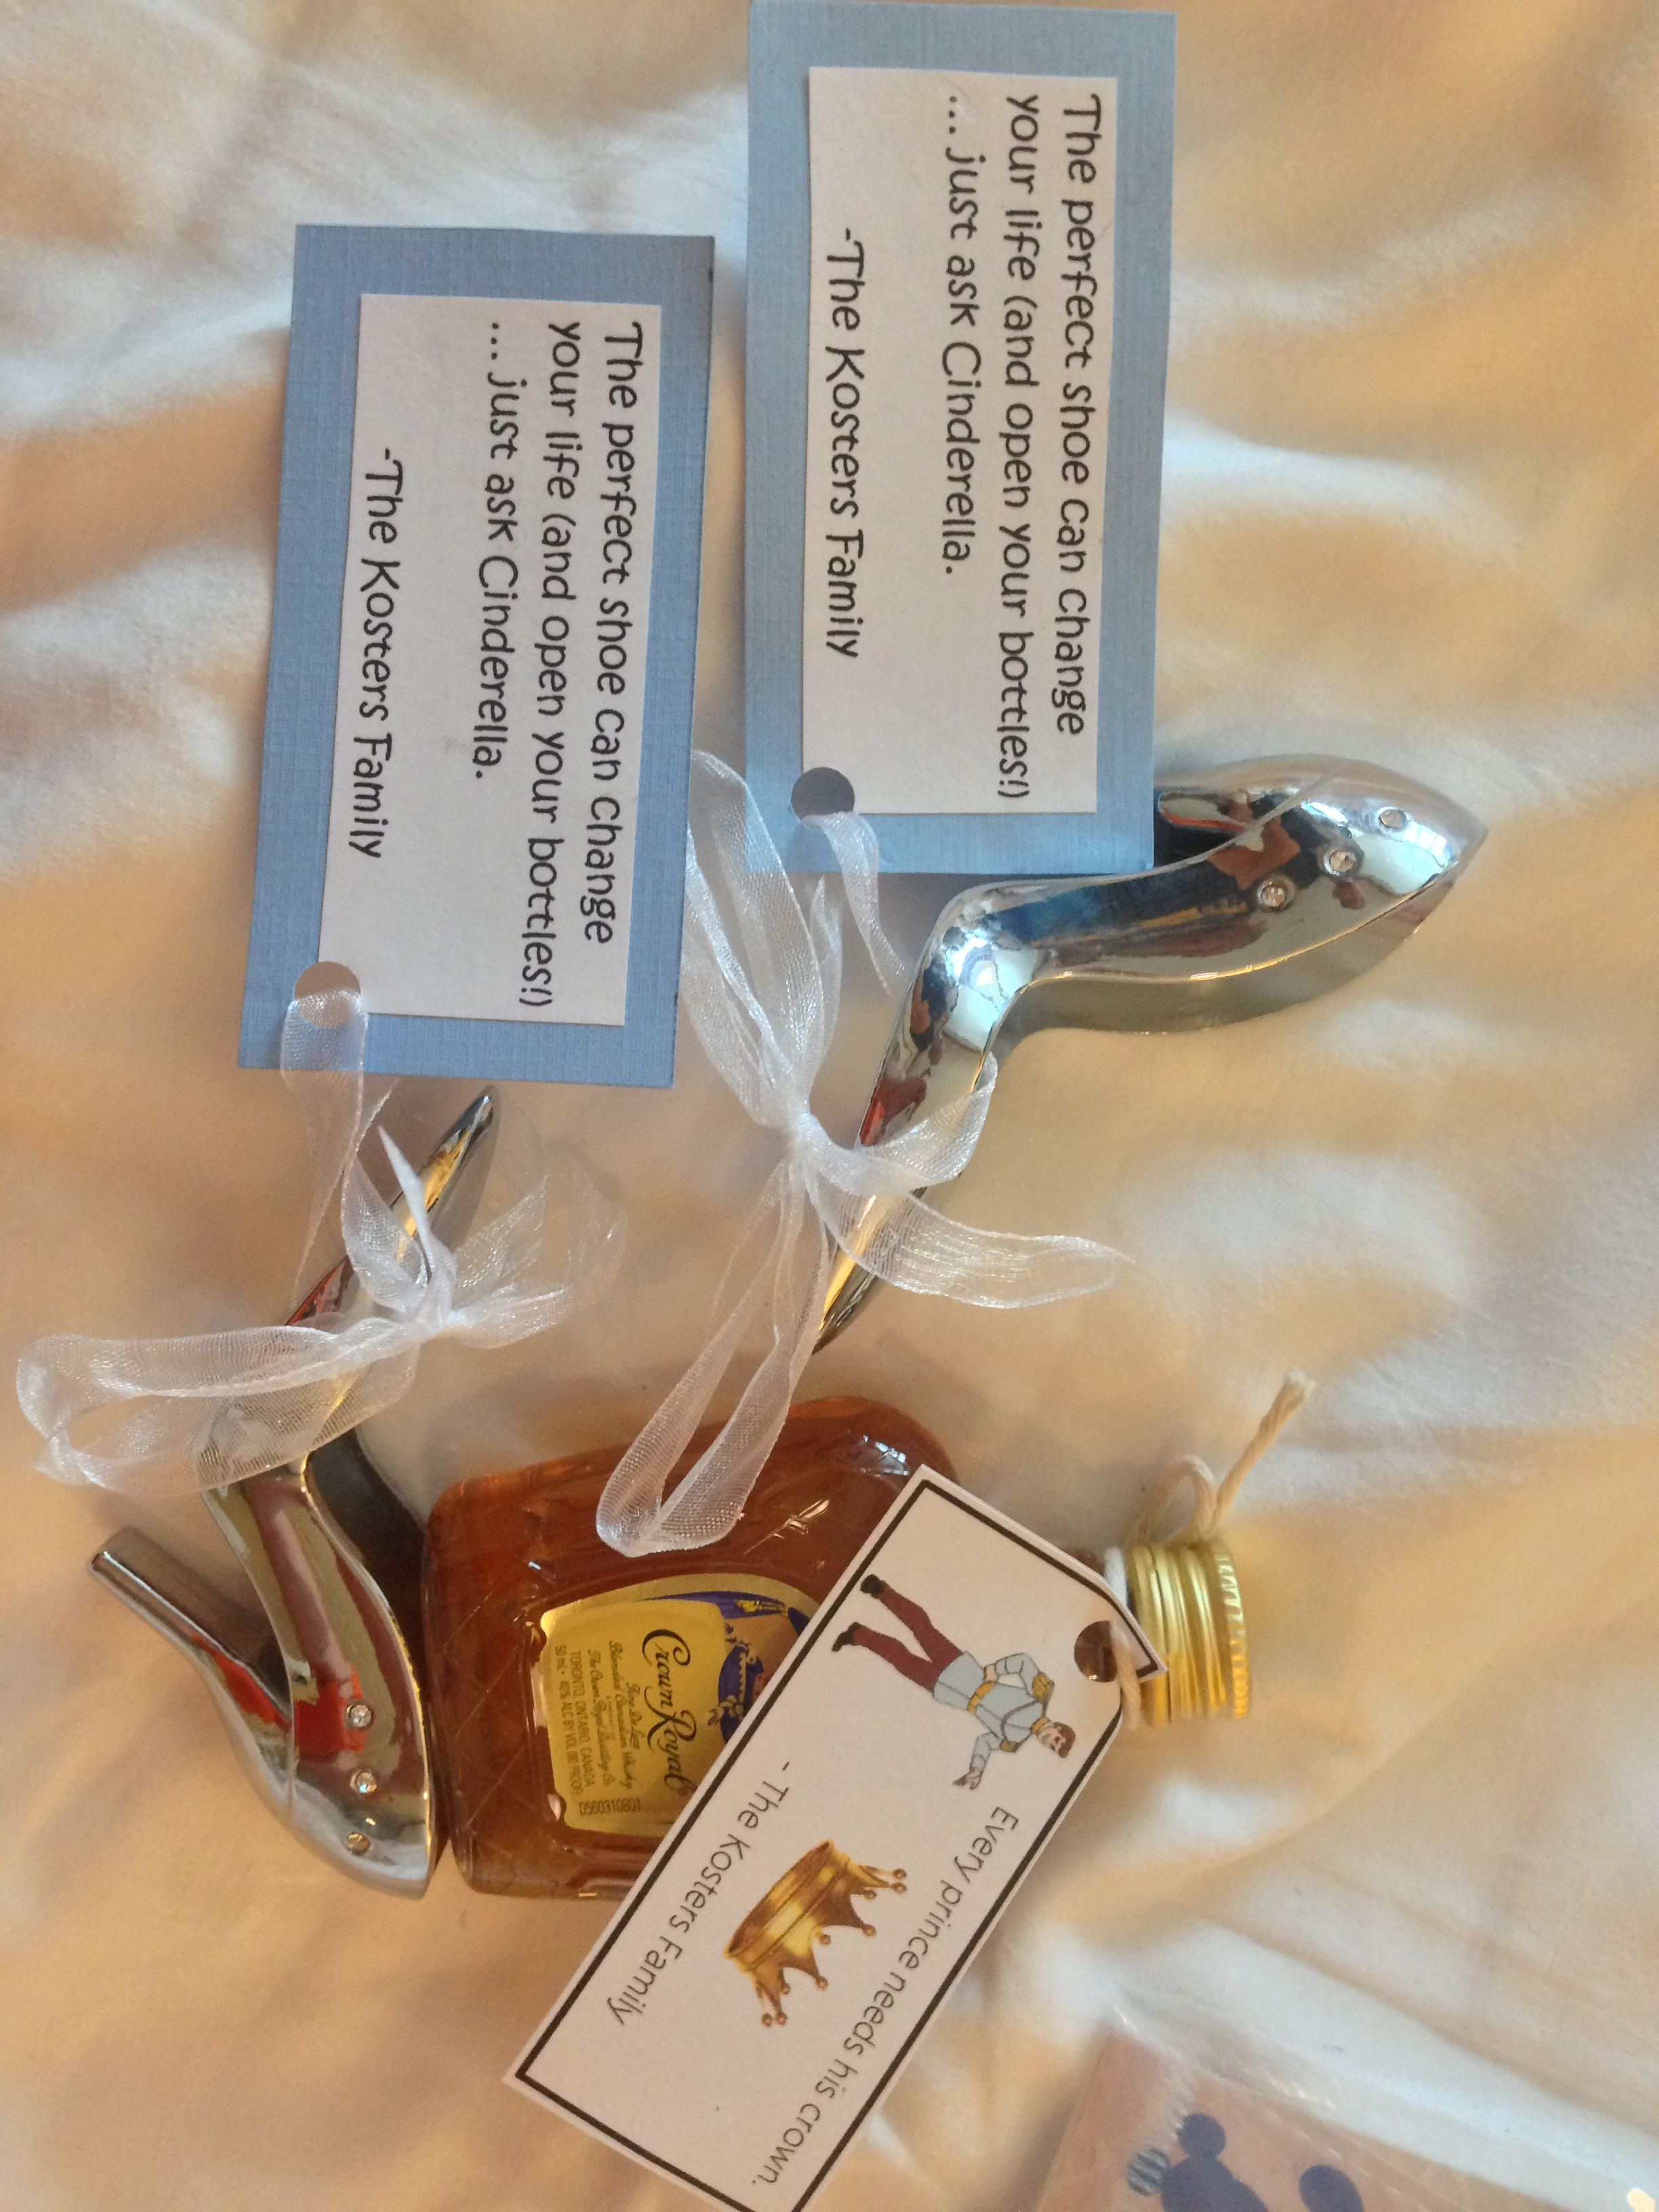 FE (fish extender) gifts we received on our cruise 5/19/13 on the Disney Dream